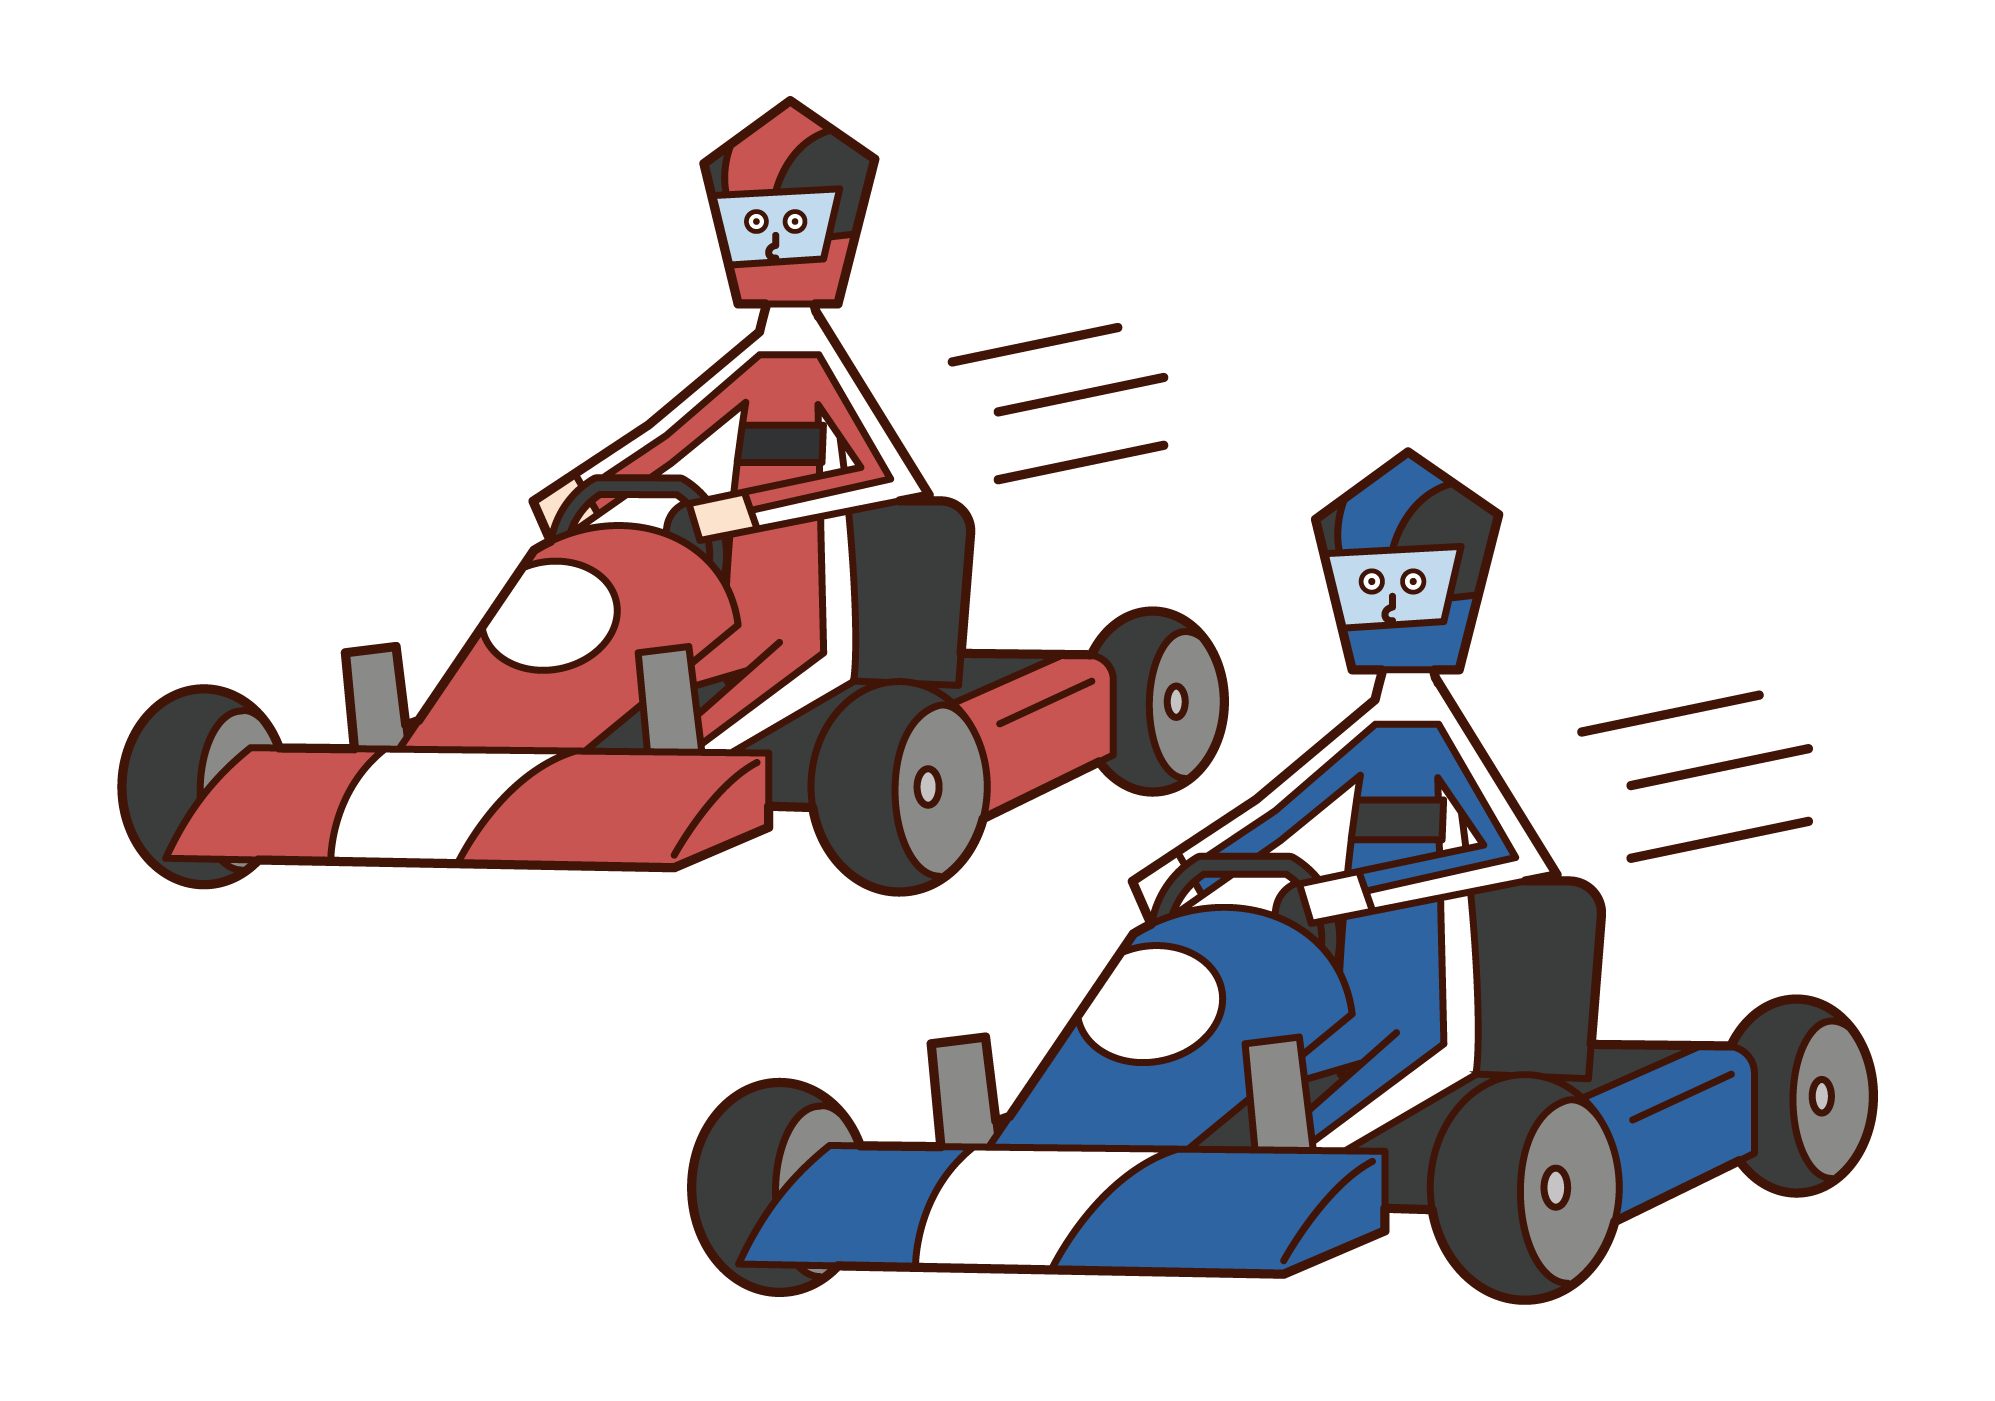 Illustration of a racing cart player racing